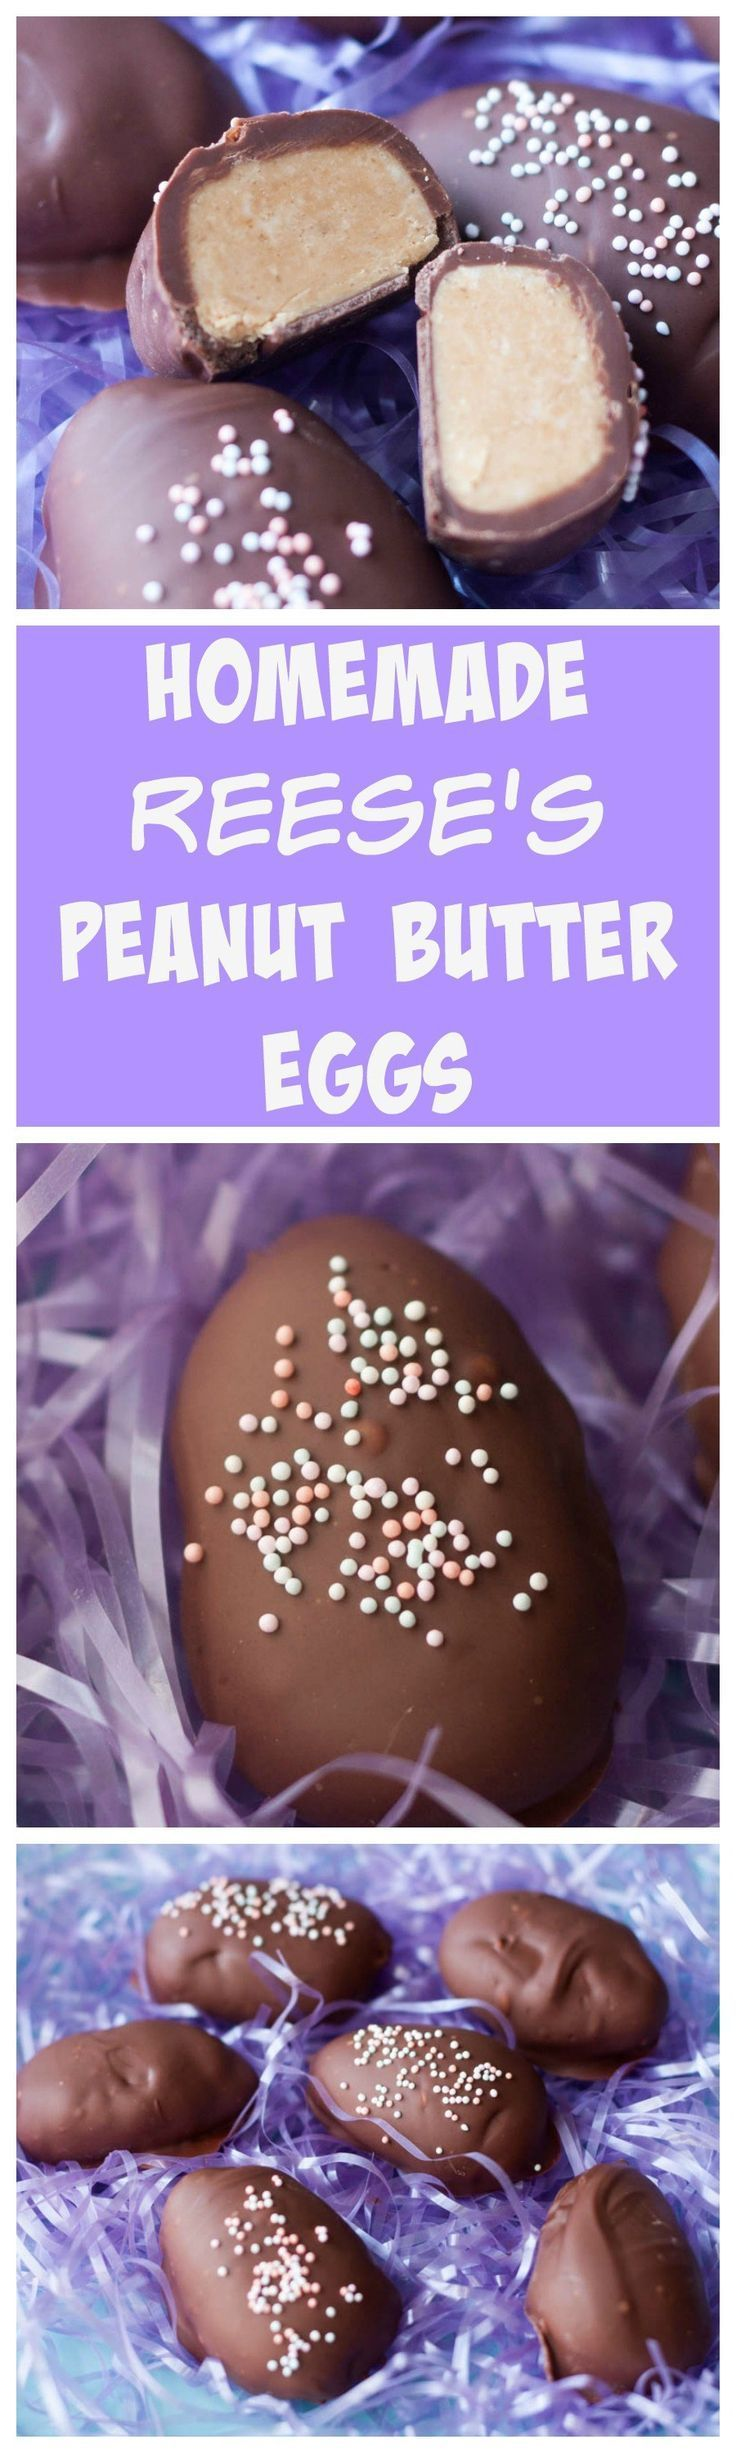 Homemade reese's peanut butter eggs- perfect treat for Easter and a 1000x times better!